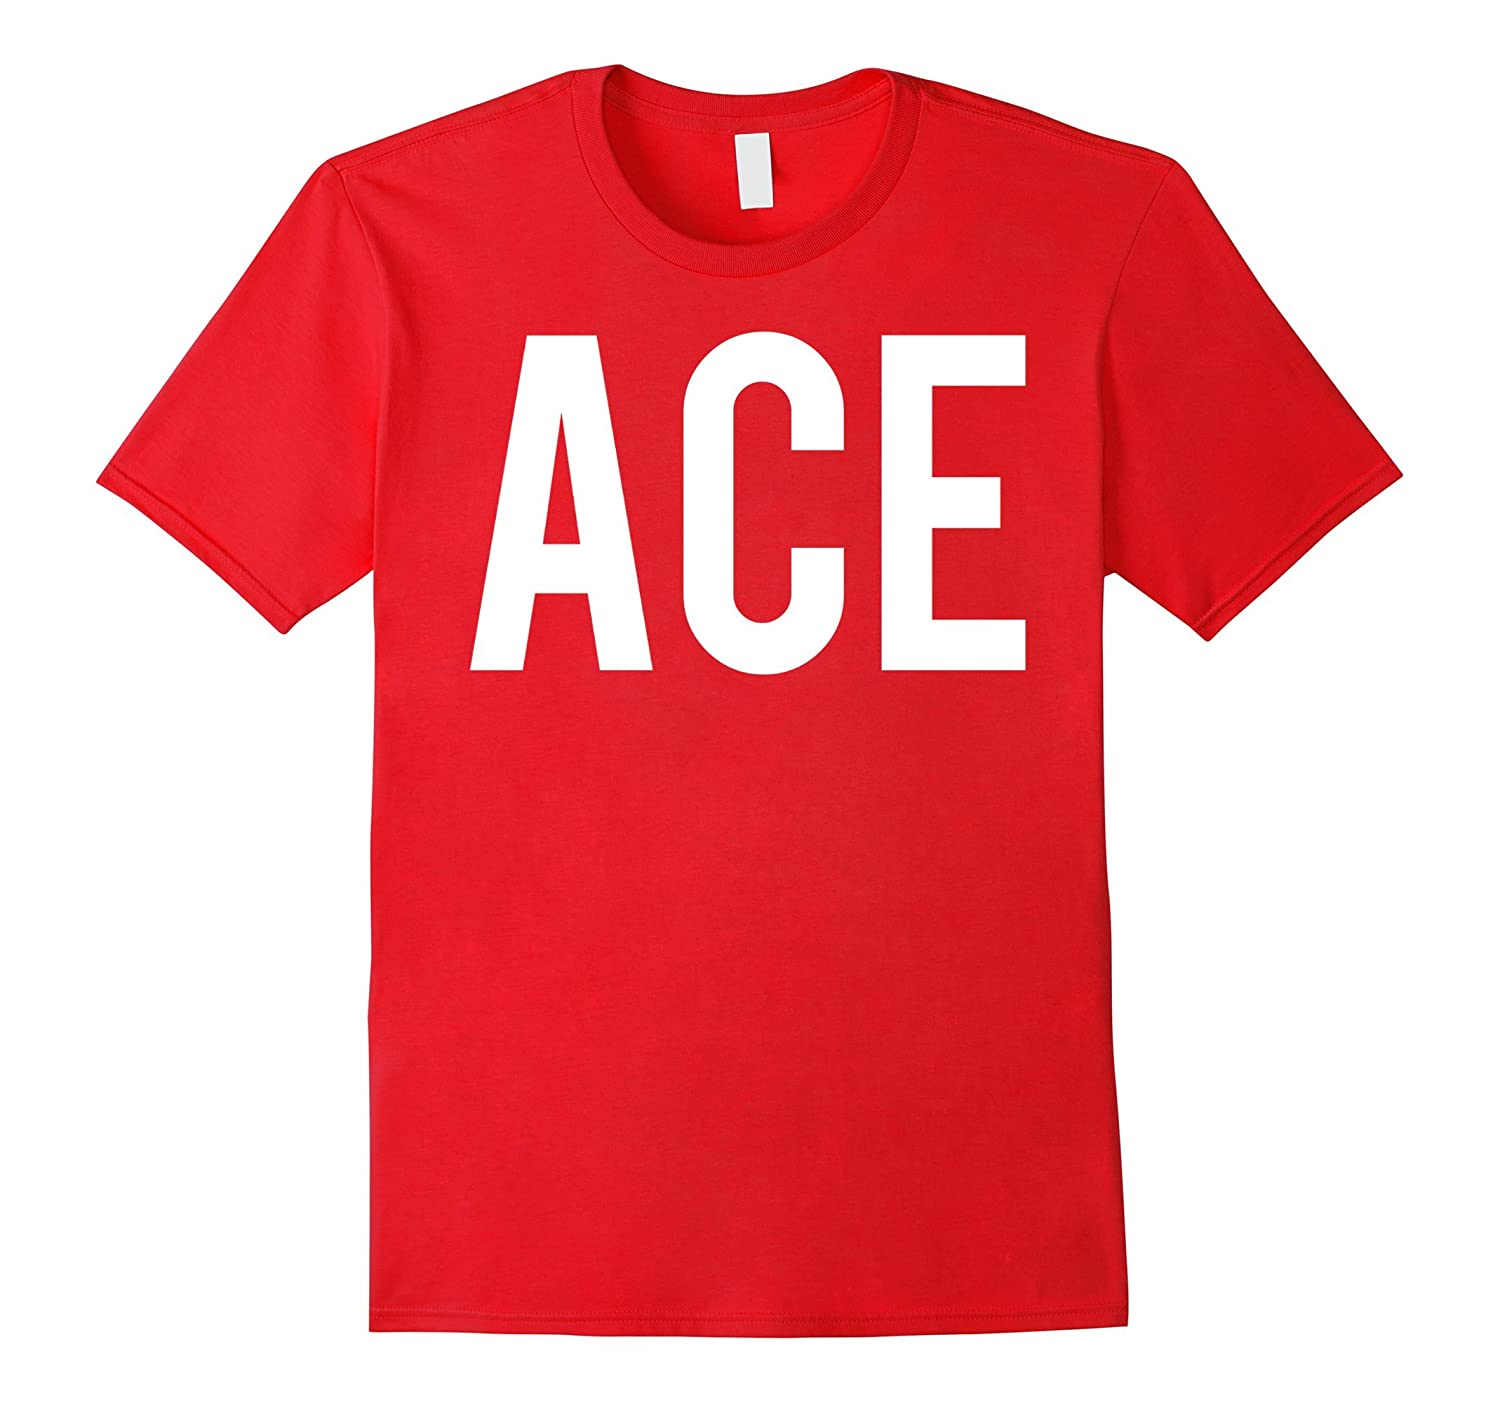 Ace T Shirt - Cool new poker card play funny cheap gift tee-PL